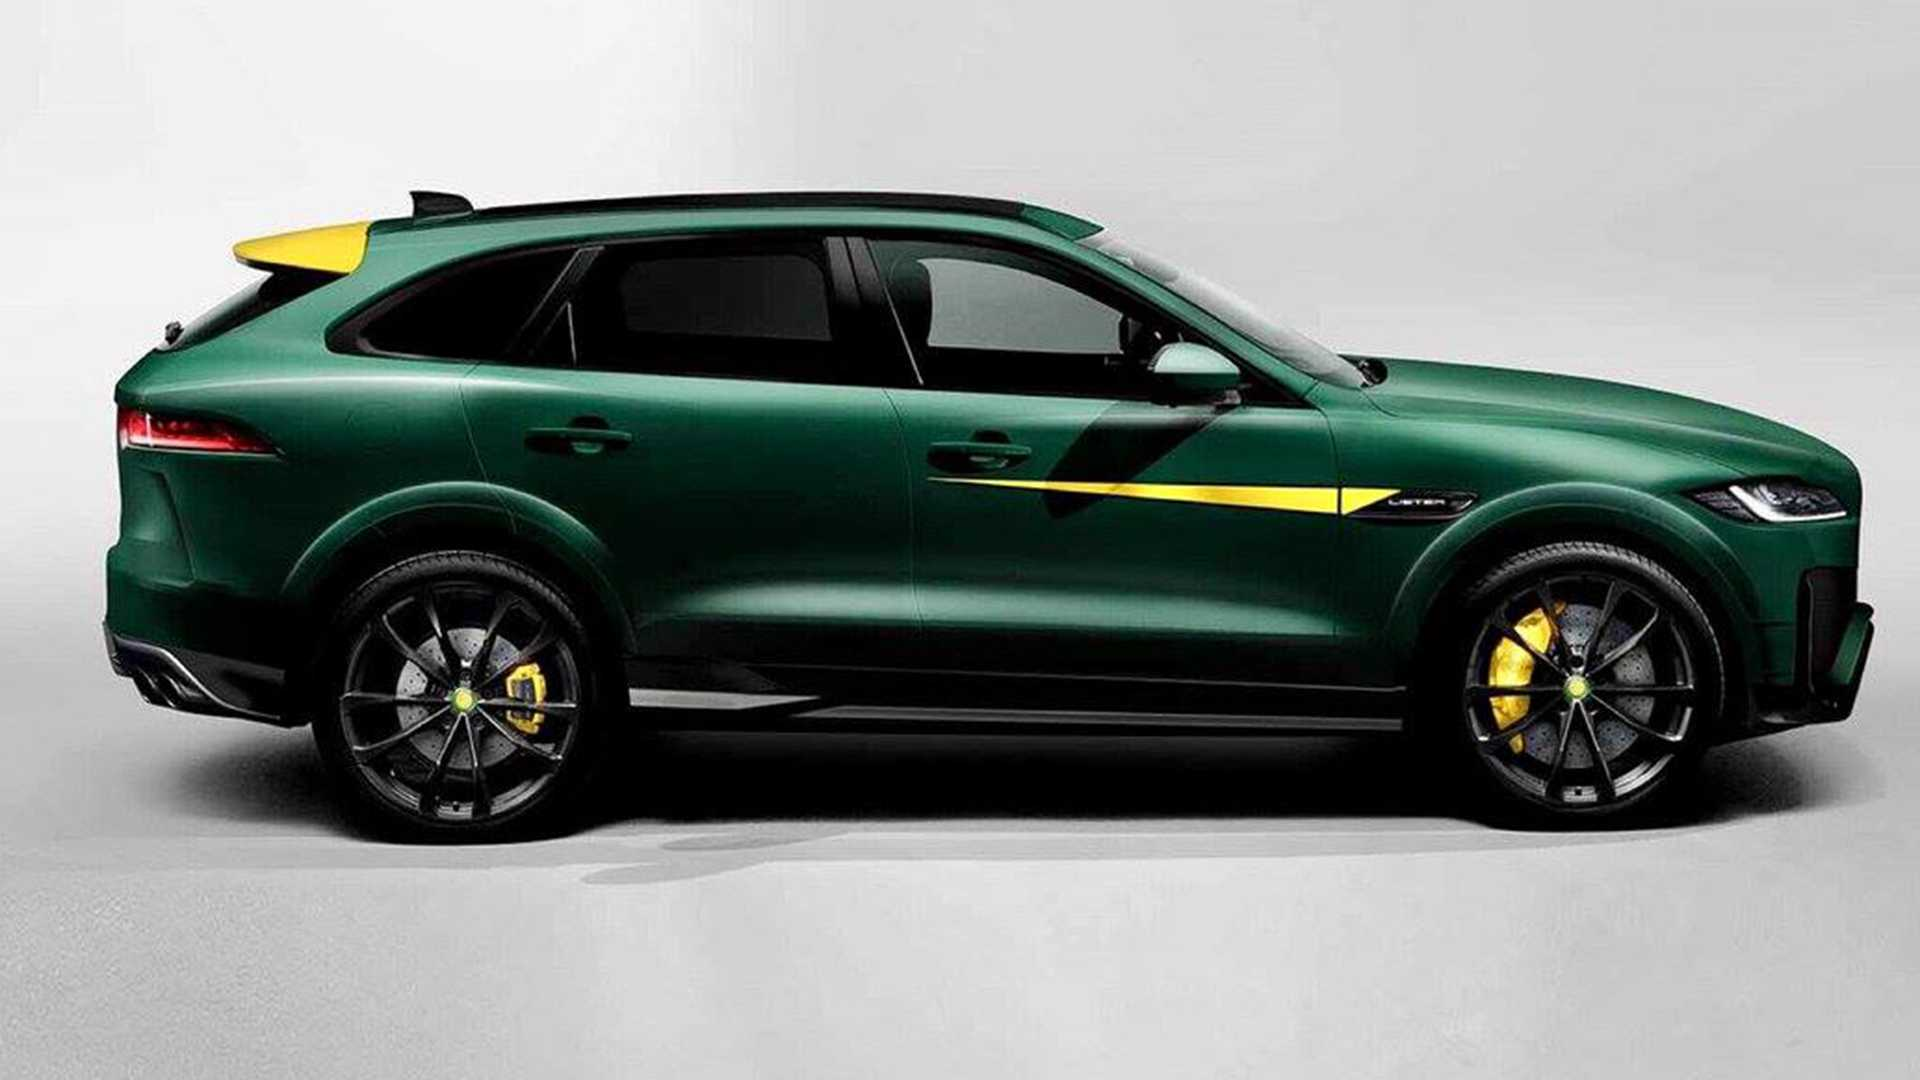 Lister S Tuned Jaguar F Pace Teases 200 Mph Top Speed Cool Style